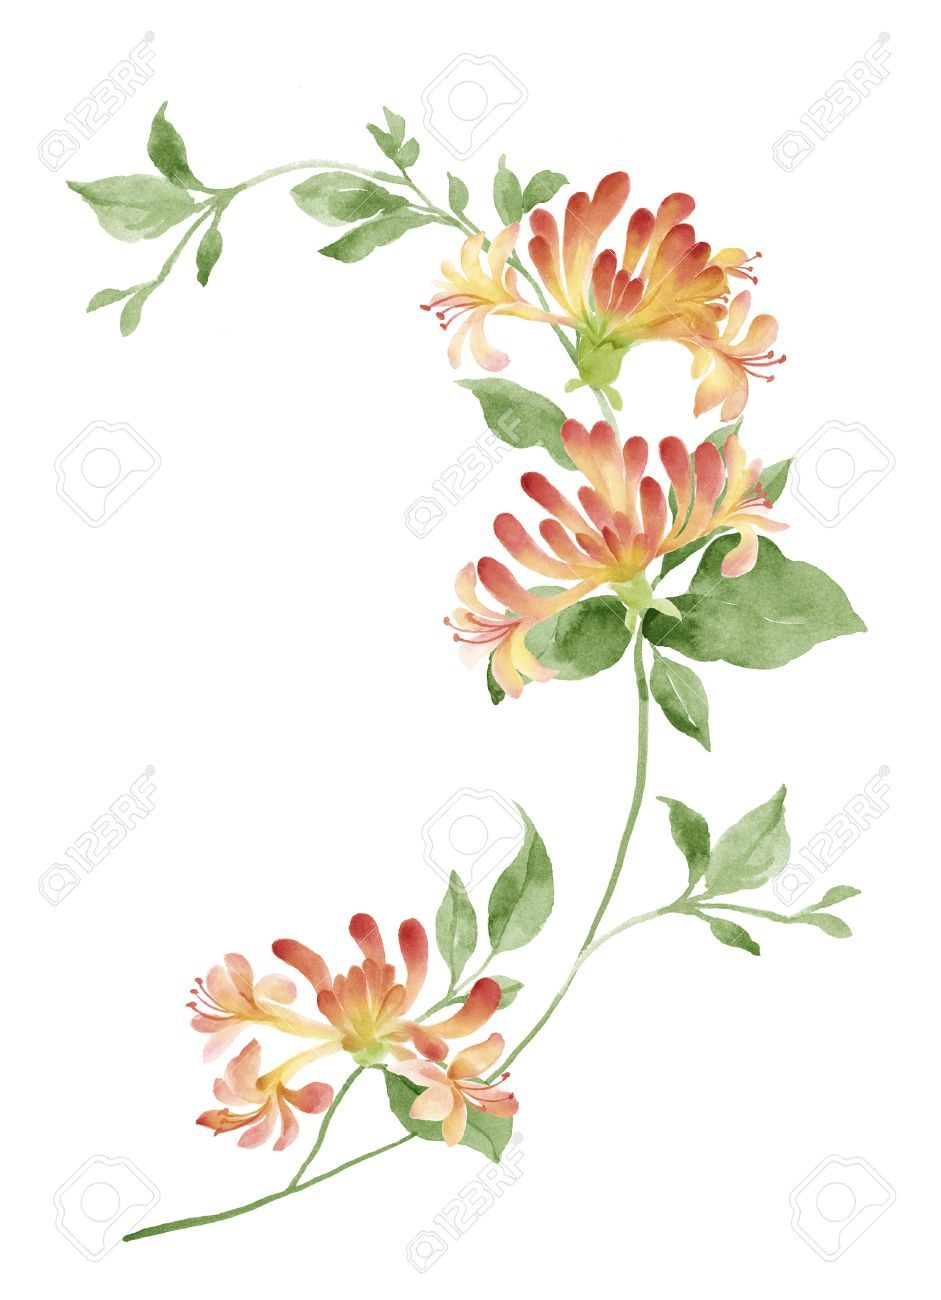 Free clipart images of wild honeysuckle bush vector library stock Honeysuckle watercolor tattoo idea for June birth month | pattern ... vector library stock